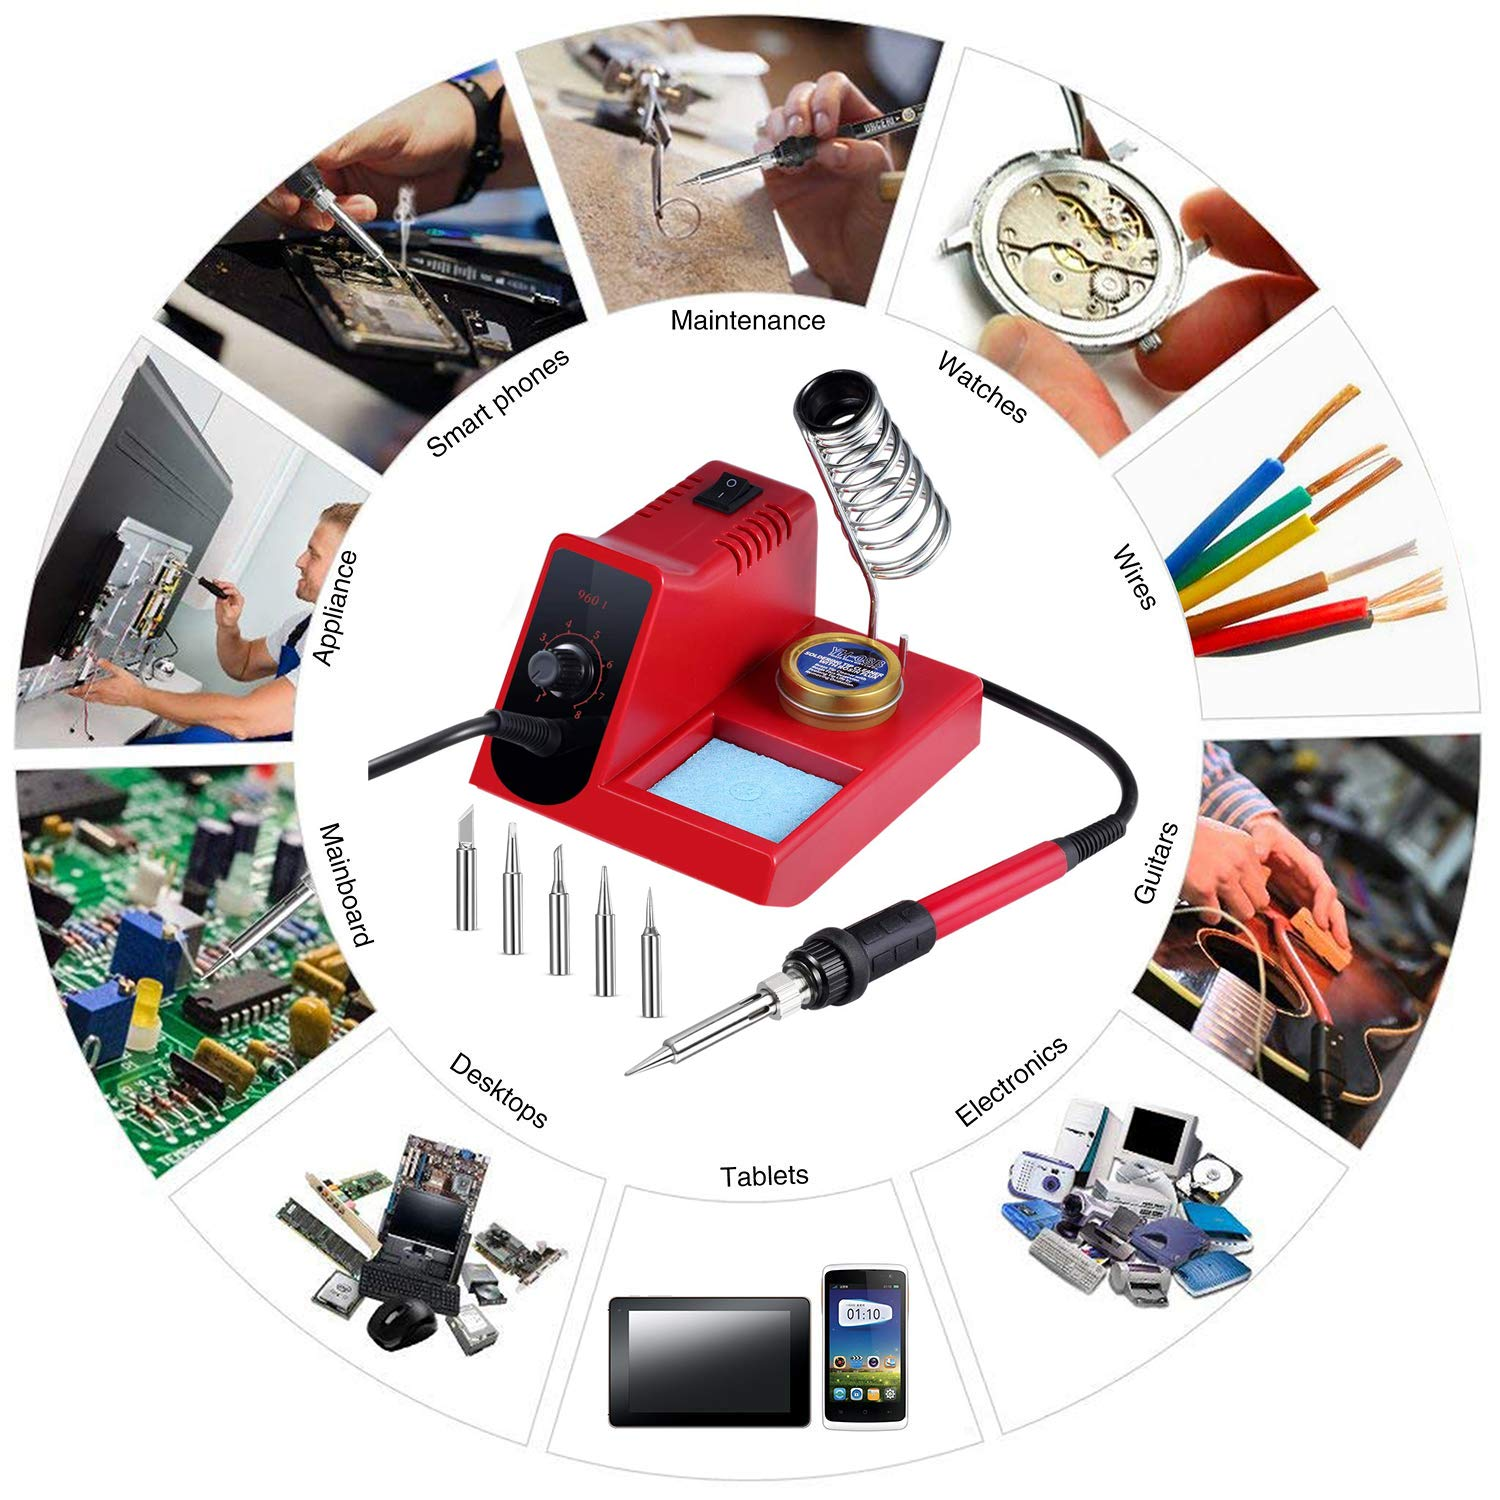 60W Soldering Iron Station, 8 Level Adjust Temperature Control, Ergonomic Soldering Iron, Solder Holder, 5 pcs Different Tips and Brass Tip Cleaner (960D) by TFLY (Image #6)